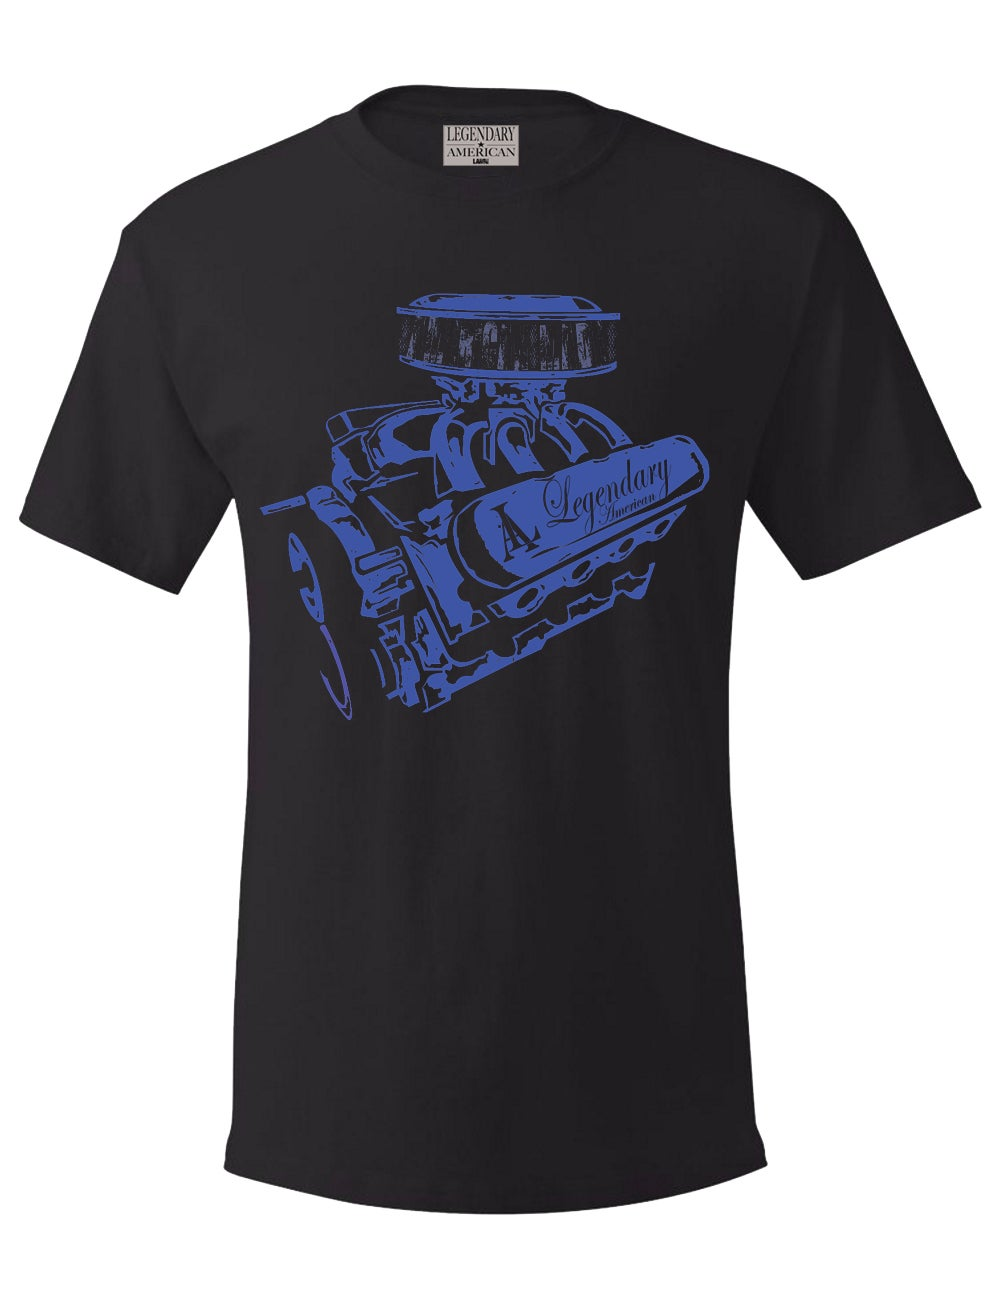 Image of Legendary American Big block tee - blue print